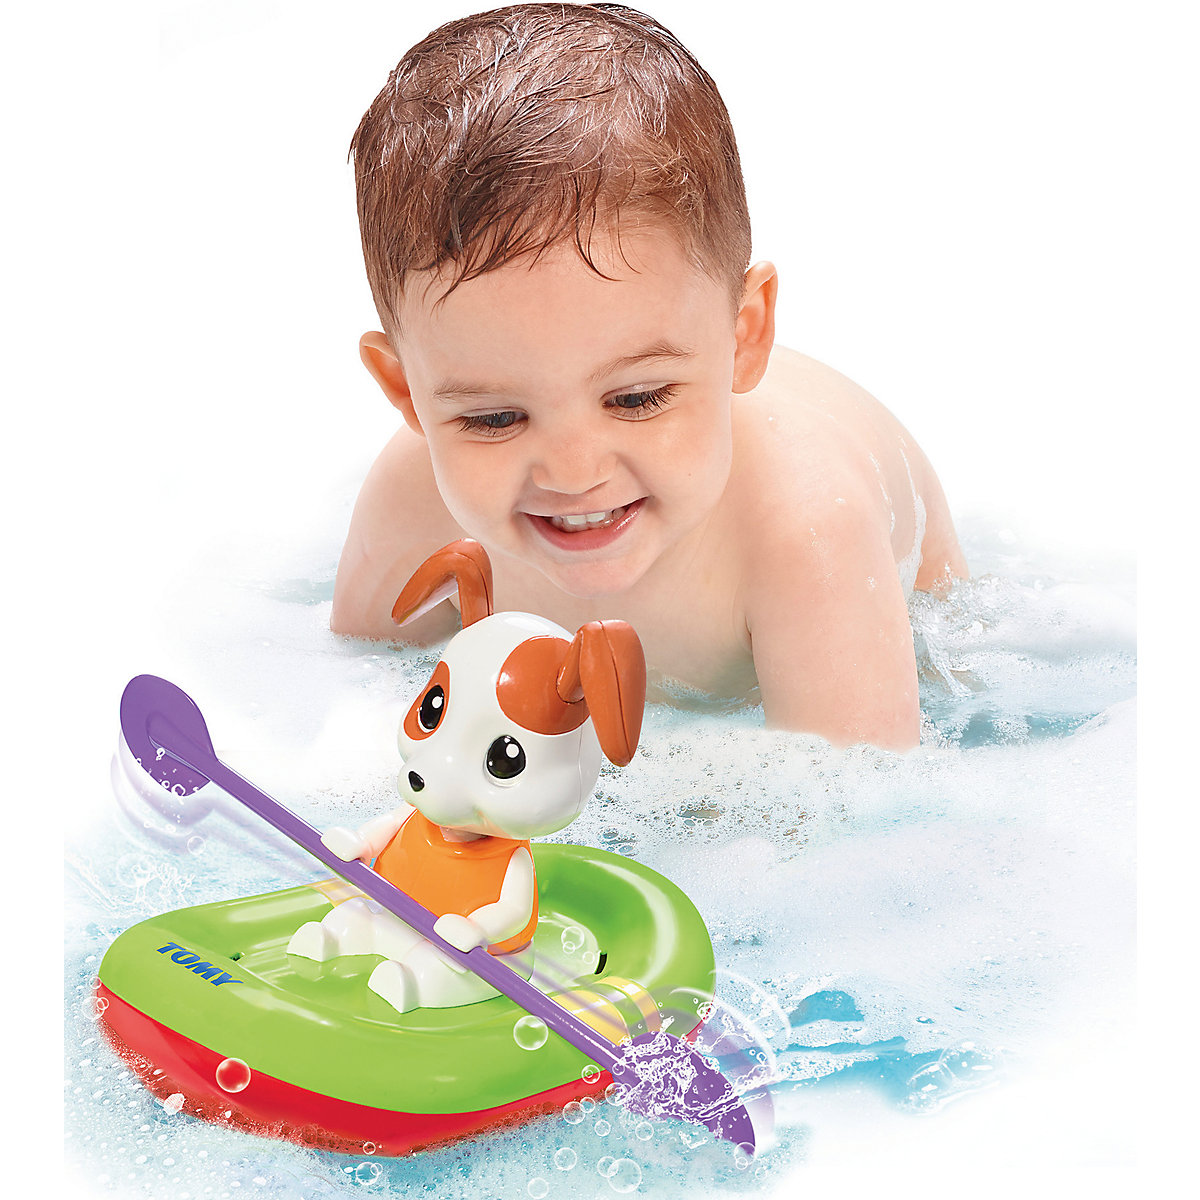 Bath Toy TOMY 4599020 Bathing Bath toys for bathroom on suckers Rubber Duck Doll Kids 13pcs lovely mixed colorful rubber can float on water and sound when squeeze you squeaky bathing toys for children bath duck